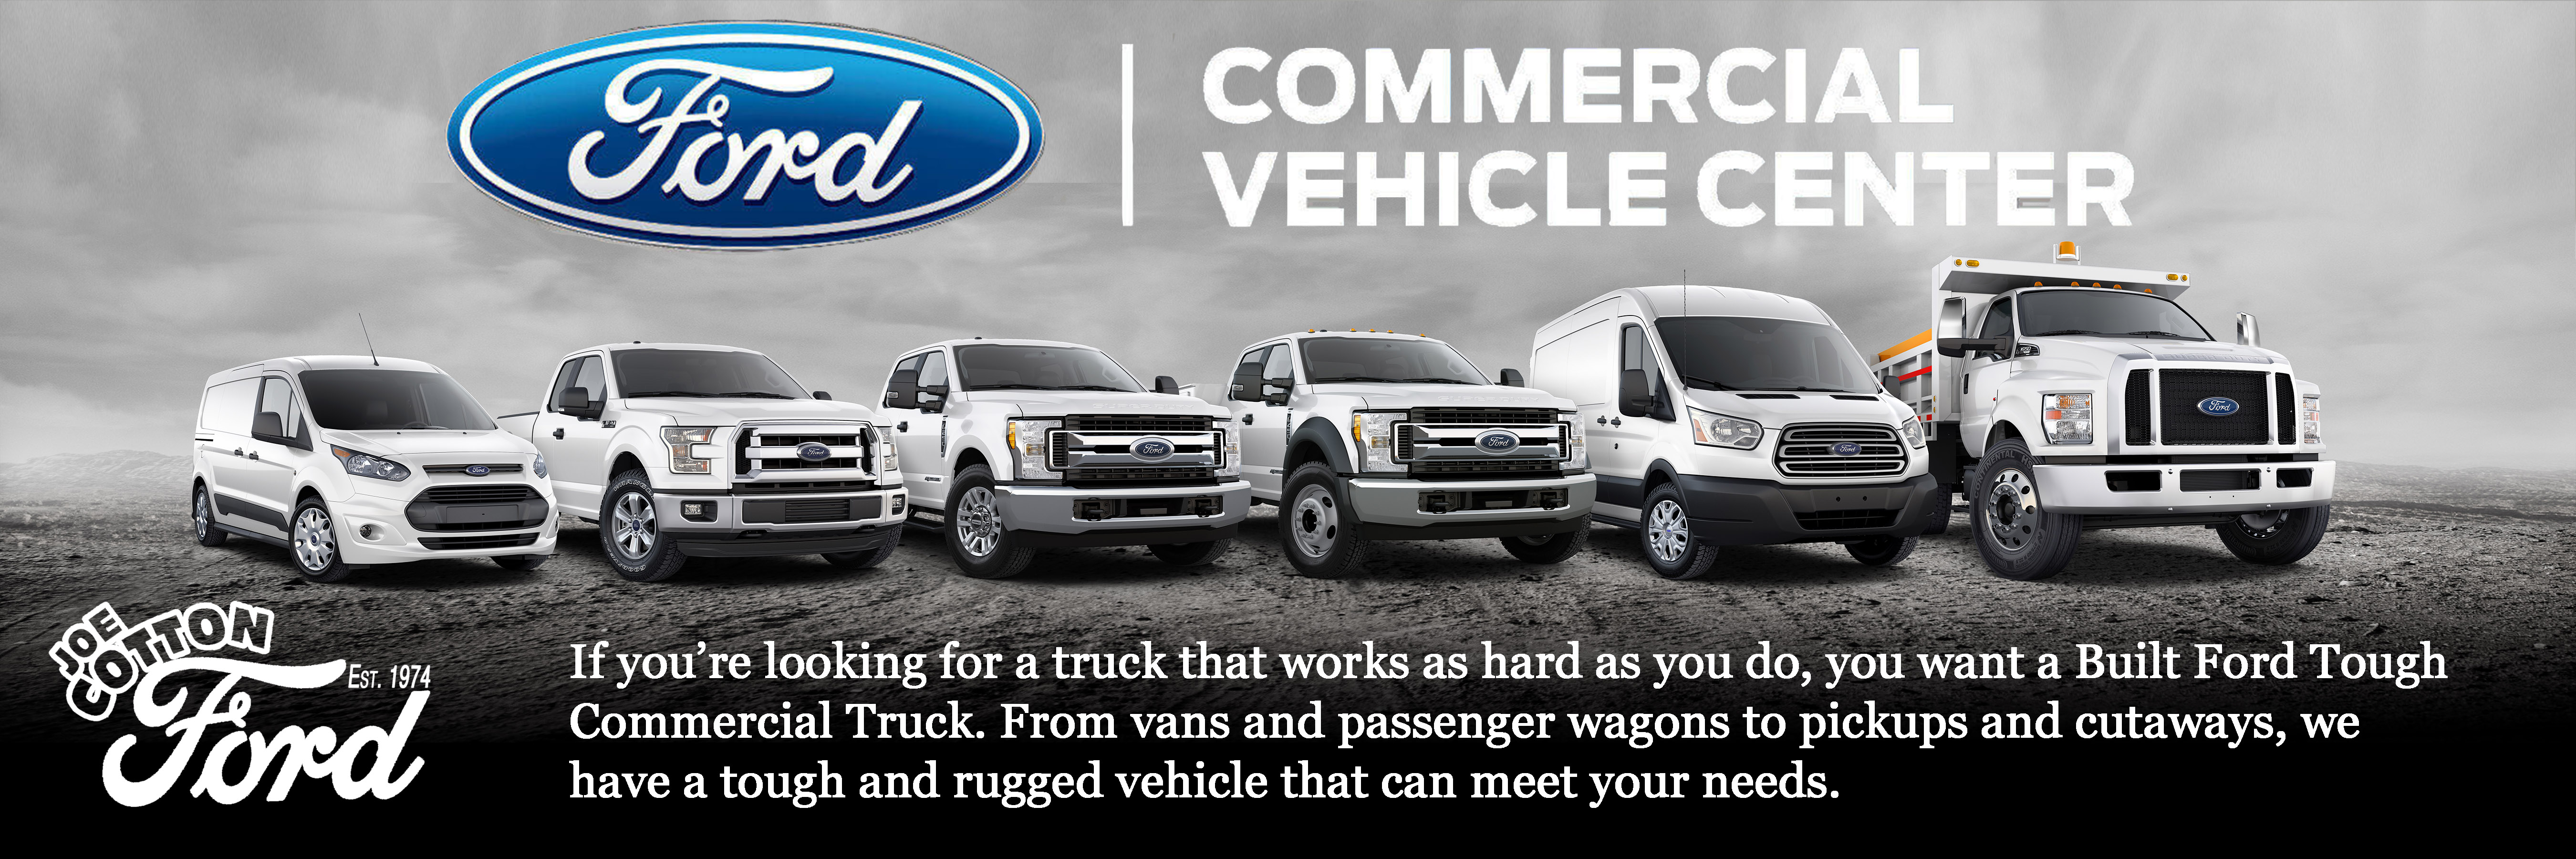 f2b0d3b678 Joe Cotton Ford Commercial Vehicle Center Near You